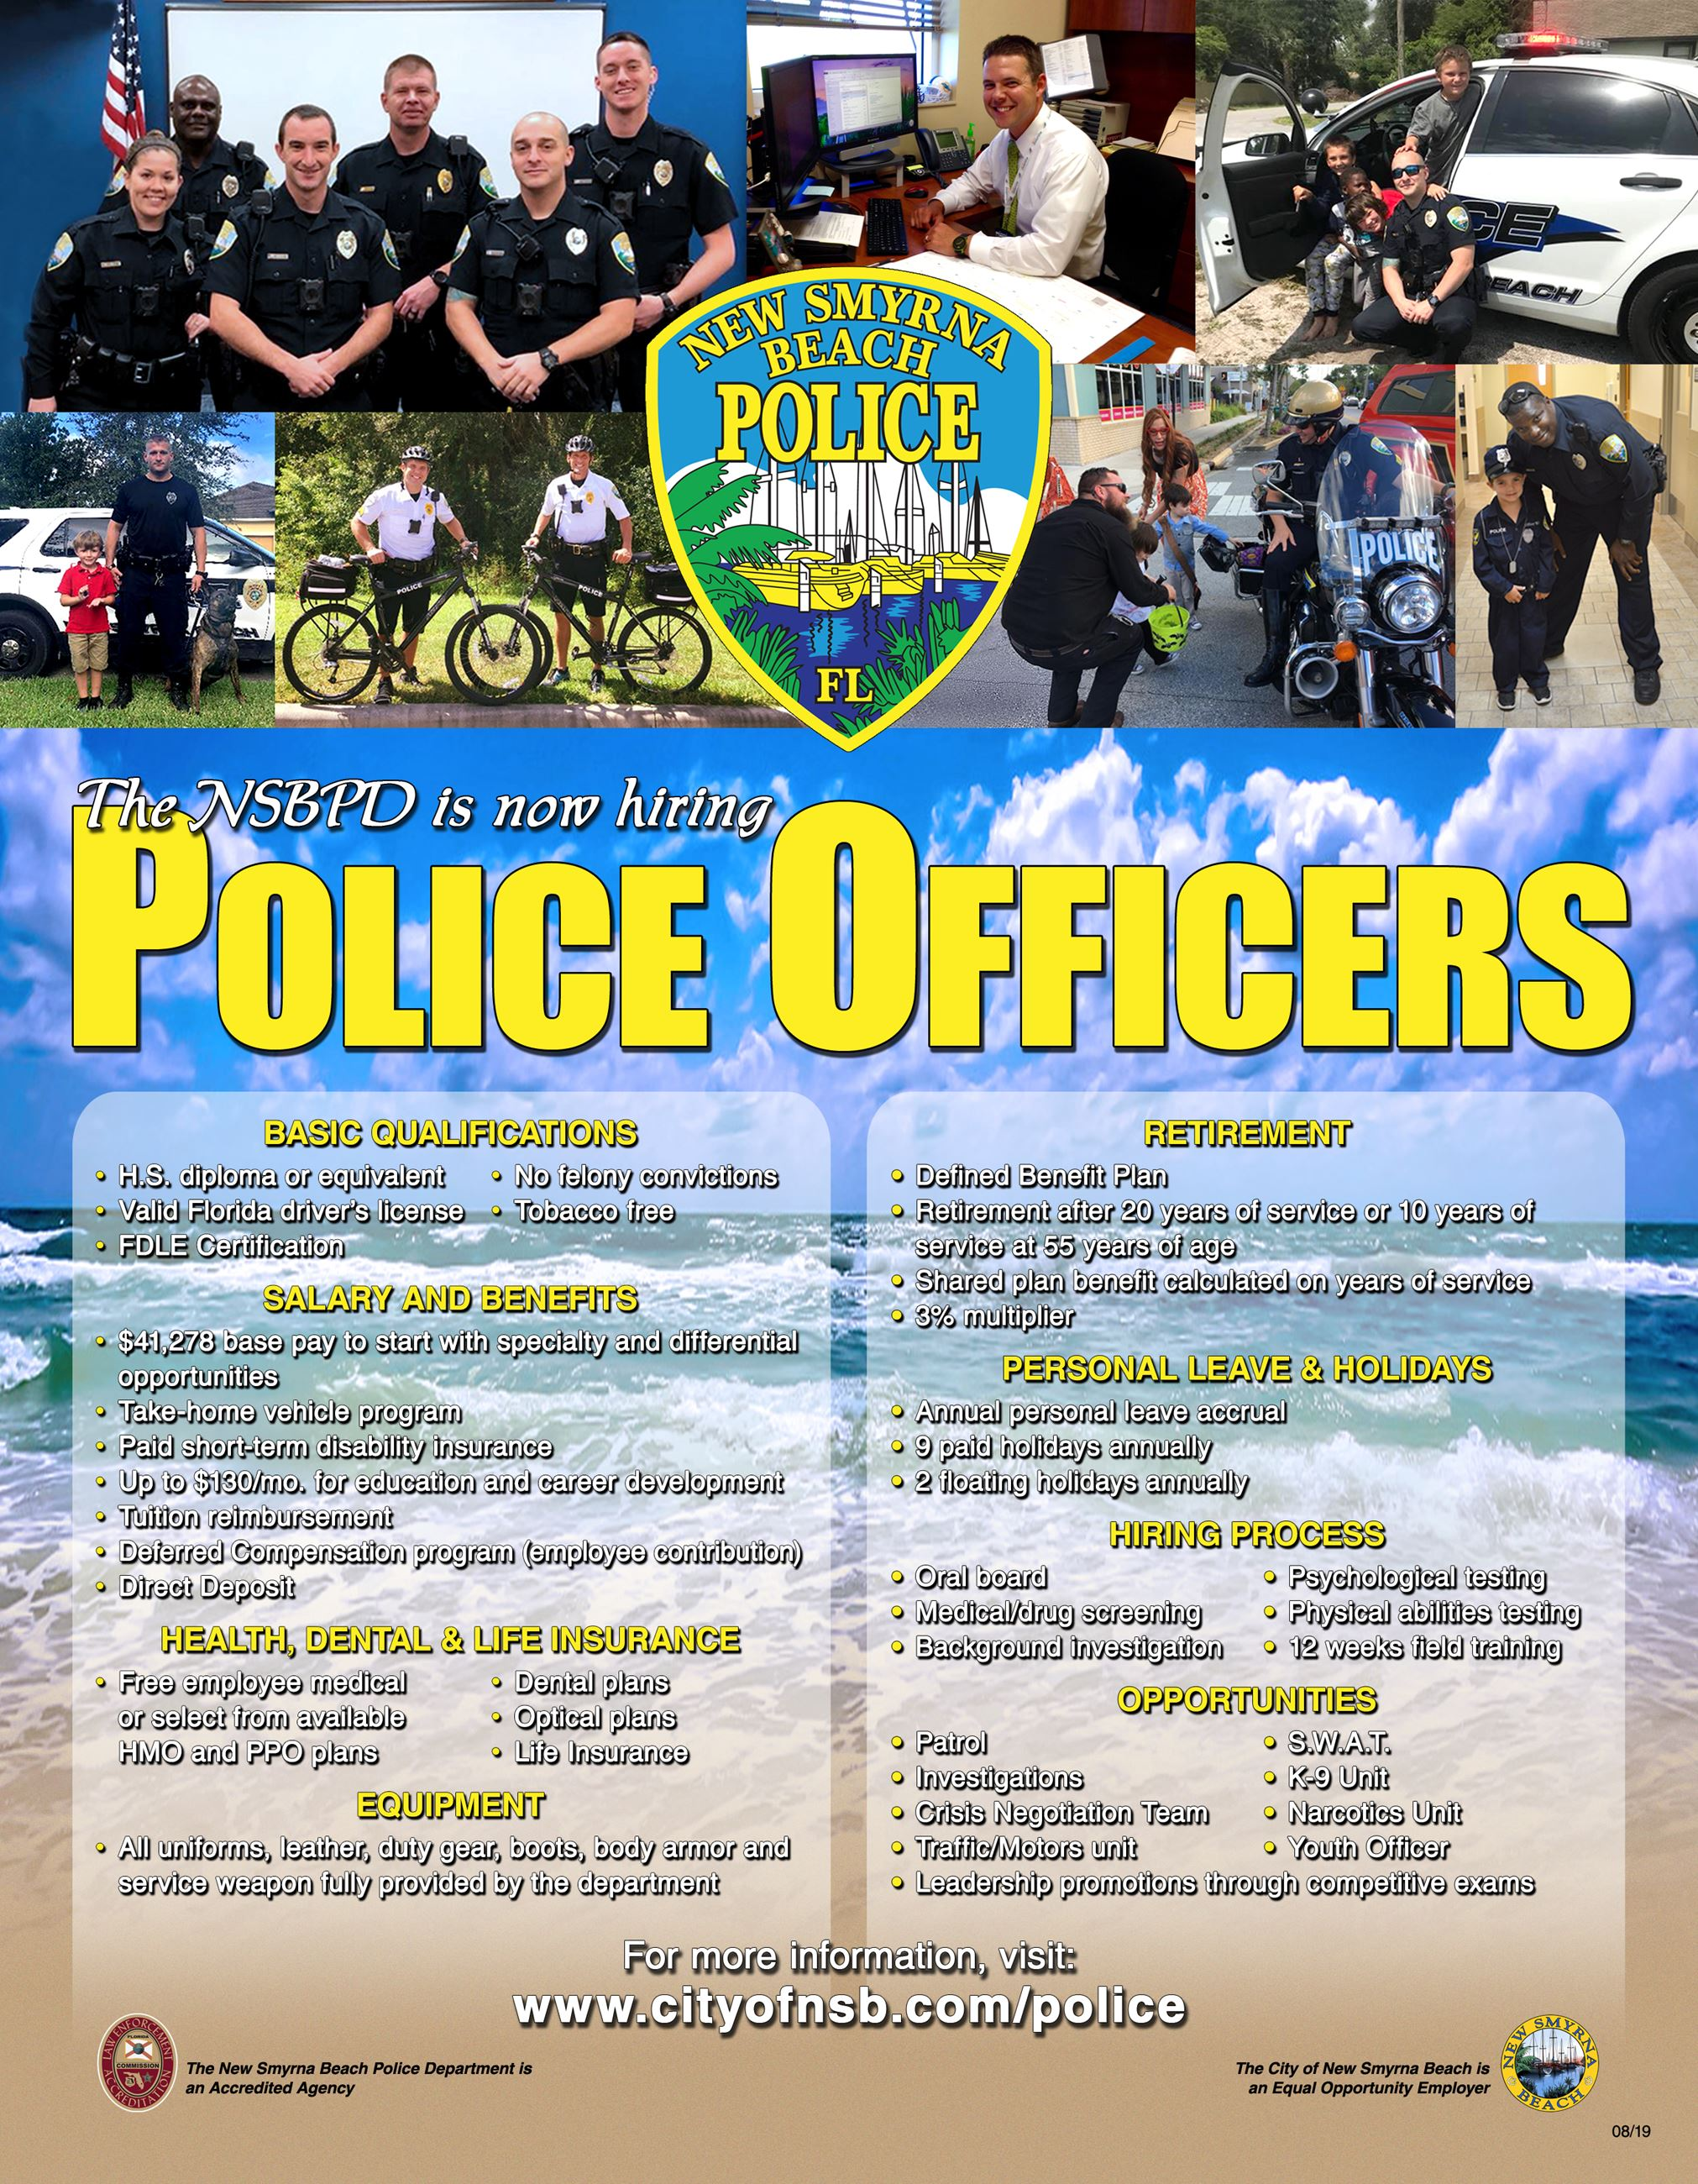 The NSBPD is now hiring. This flyer contains Basic Qualifications, Salary and Benefits, etc.